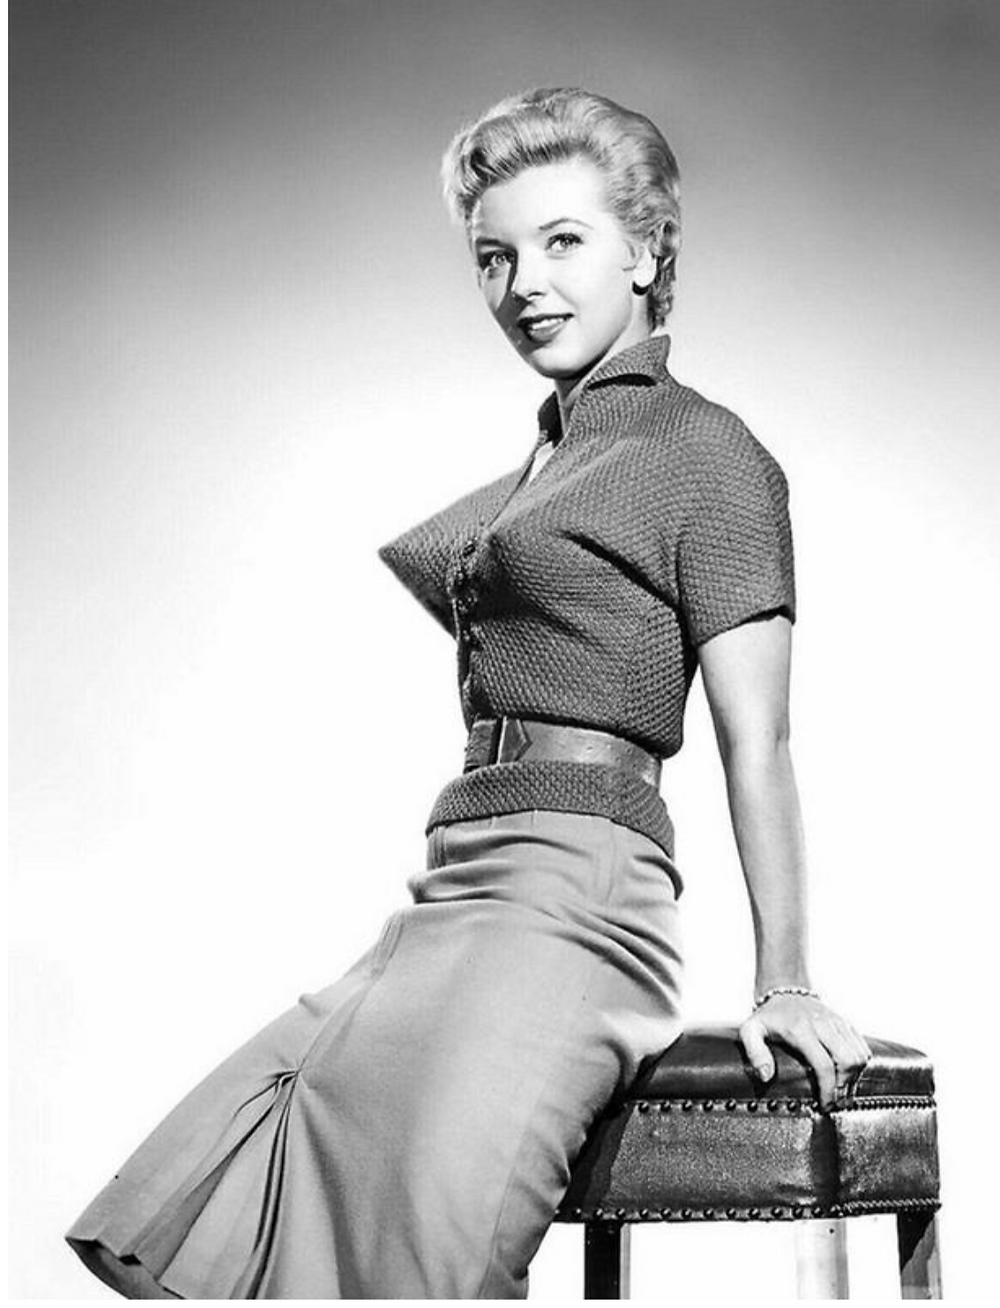 1950's woman in a tight sweater with Bullet Boobs